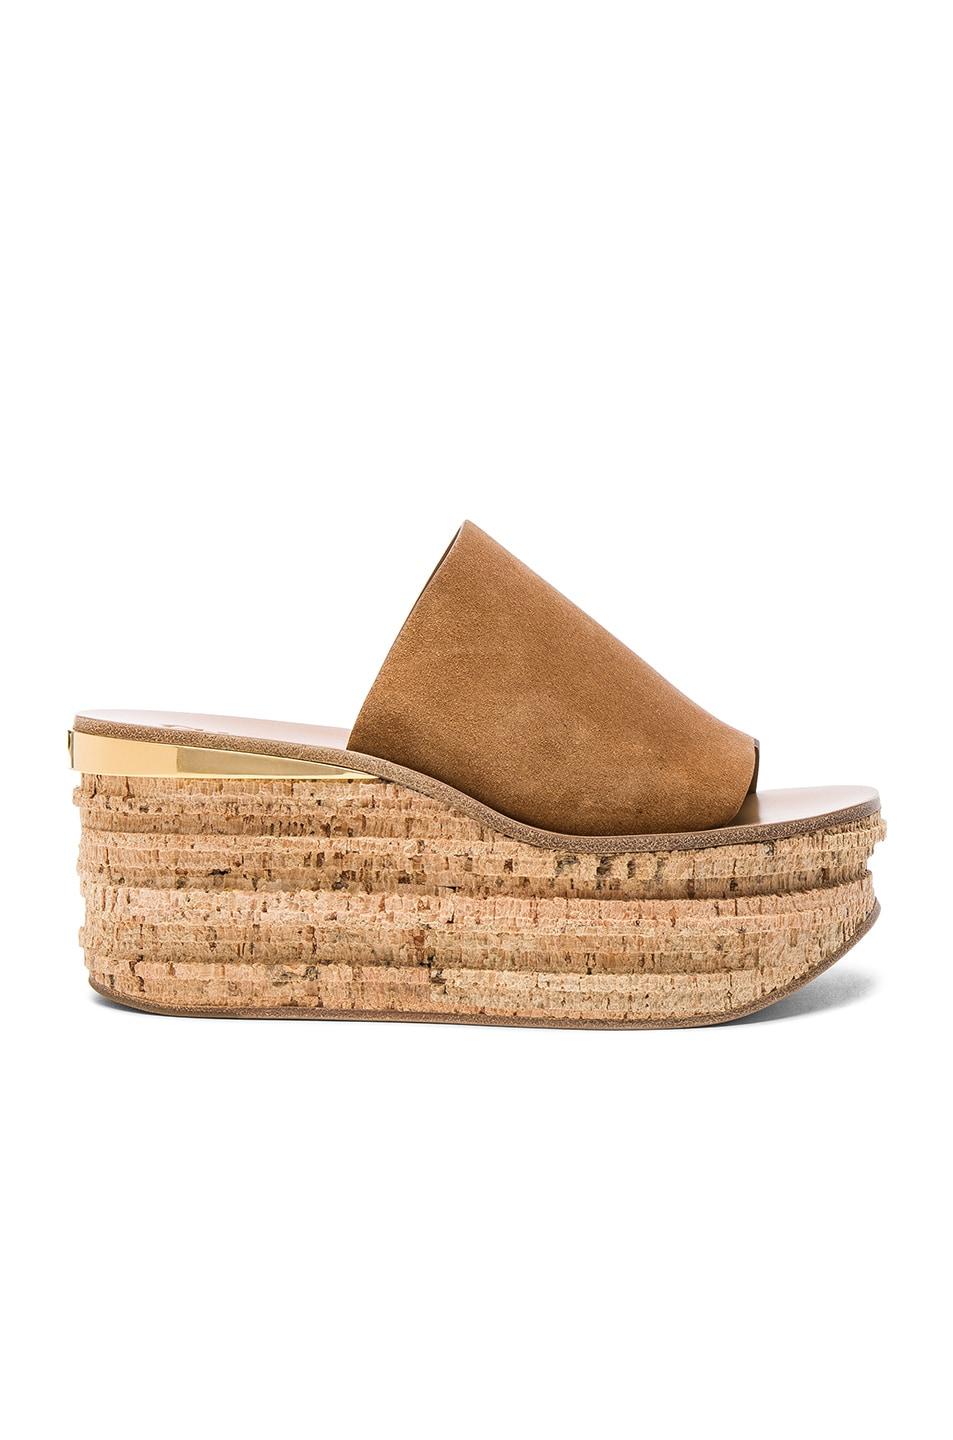 Image 1 of Chloe Suede Camille Wedge Sandals in Cappuccino